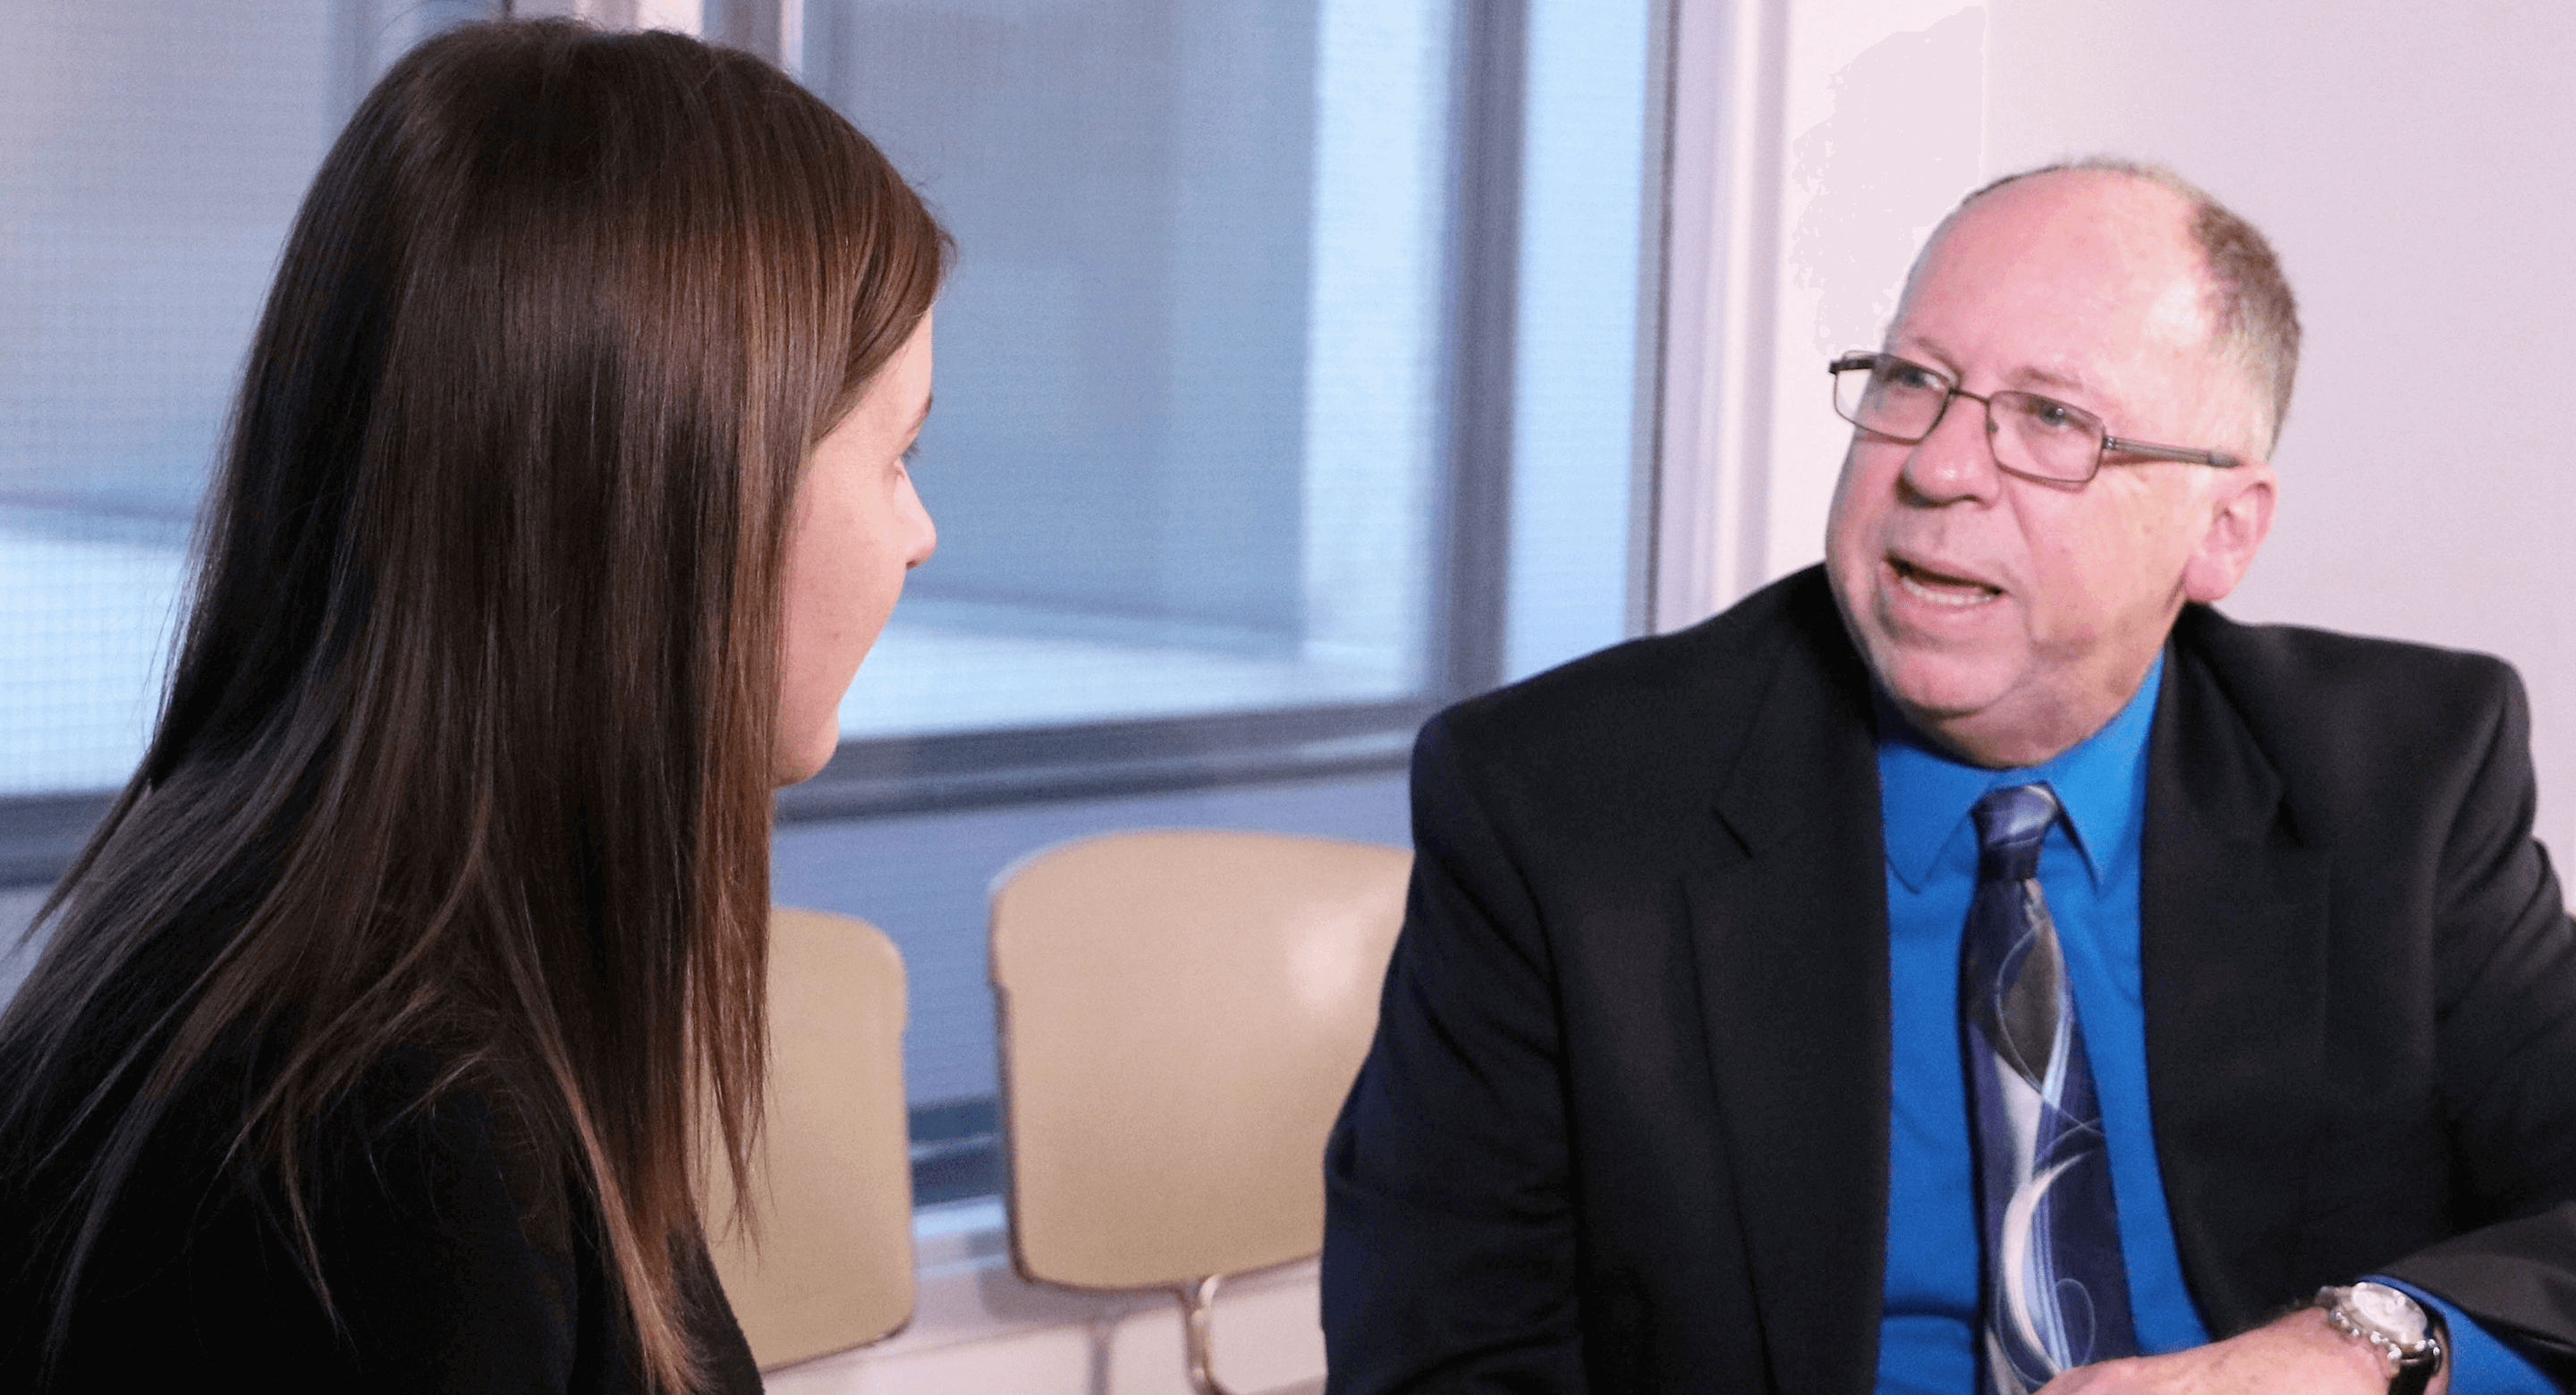 Gillian Strudwick interviews Stephen O'Neill about the OpenNotes mental health program in this video produced by Portico